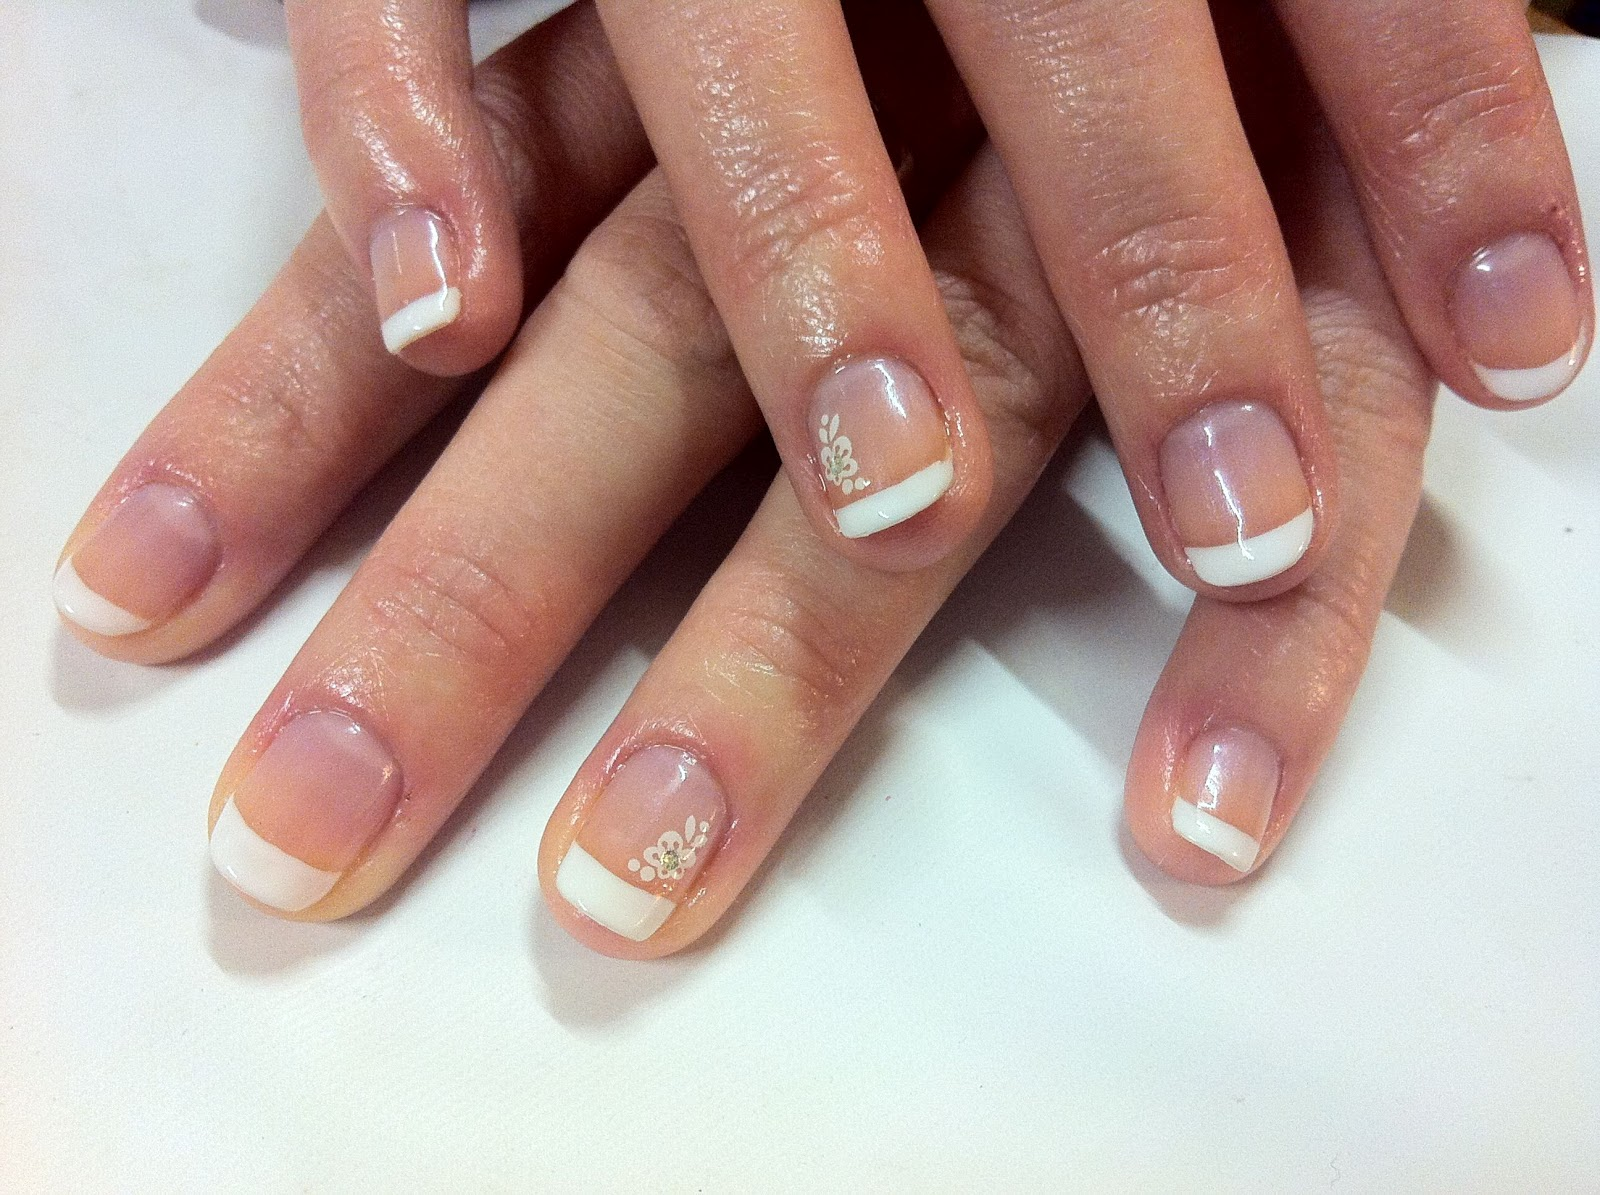 Viva la nails CND Shellac french manicure and flower stickers WS02